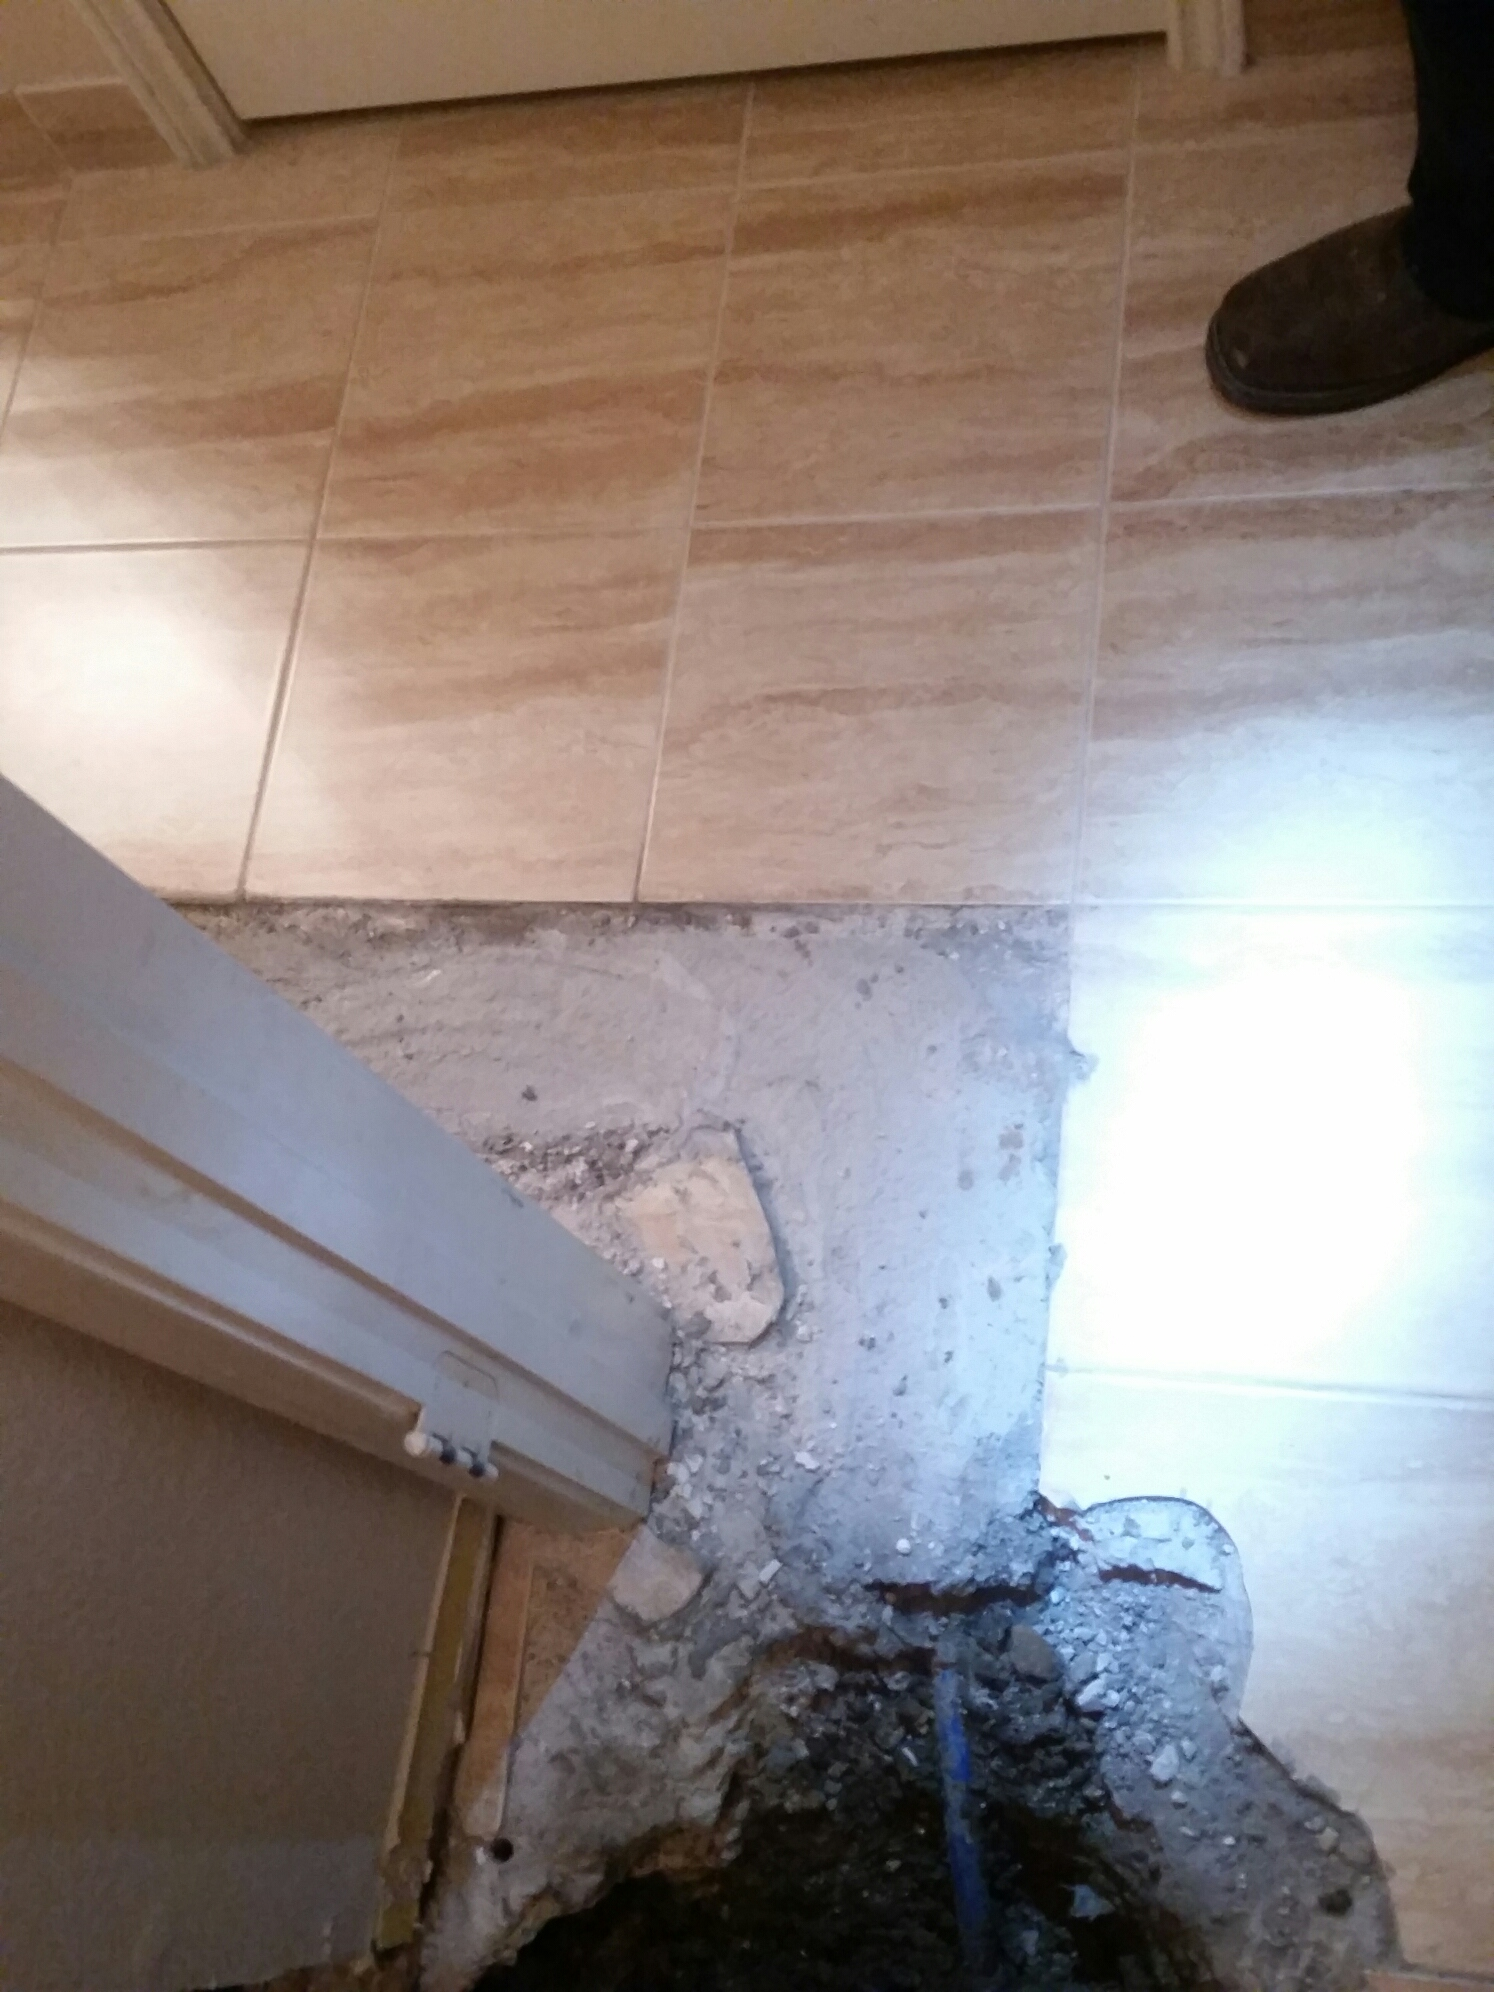 illegal slab leak repair not up to code reopened to correct failed repair